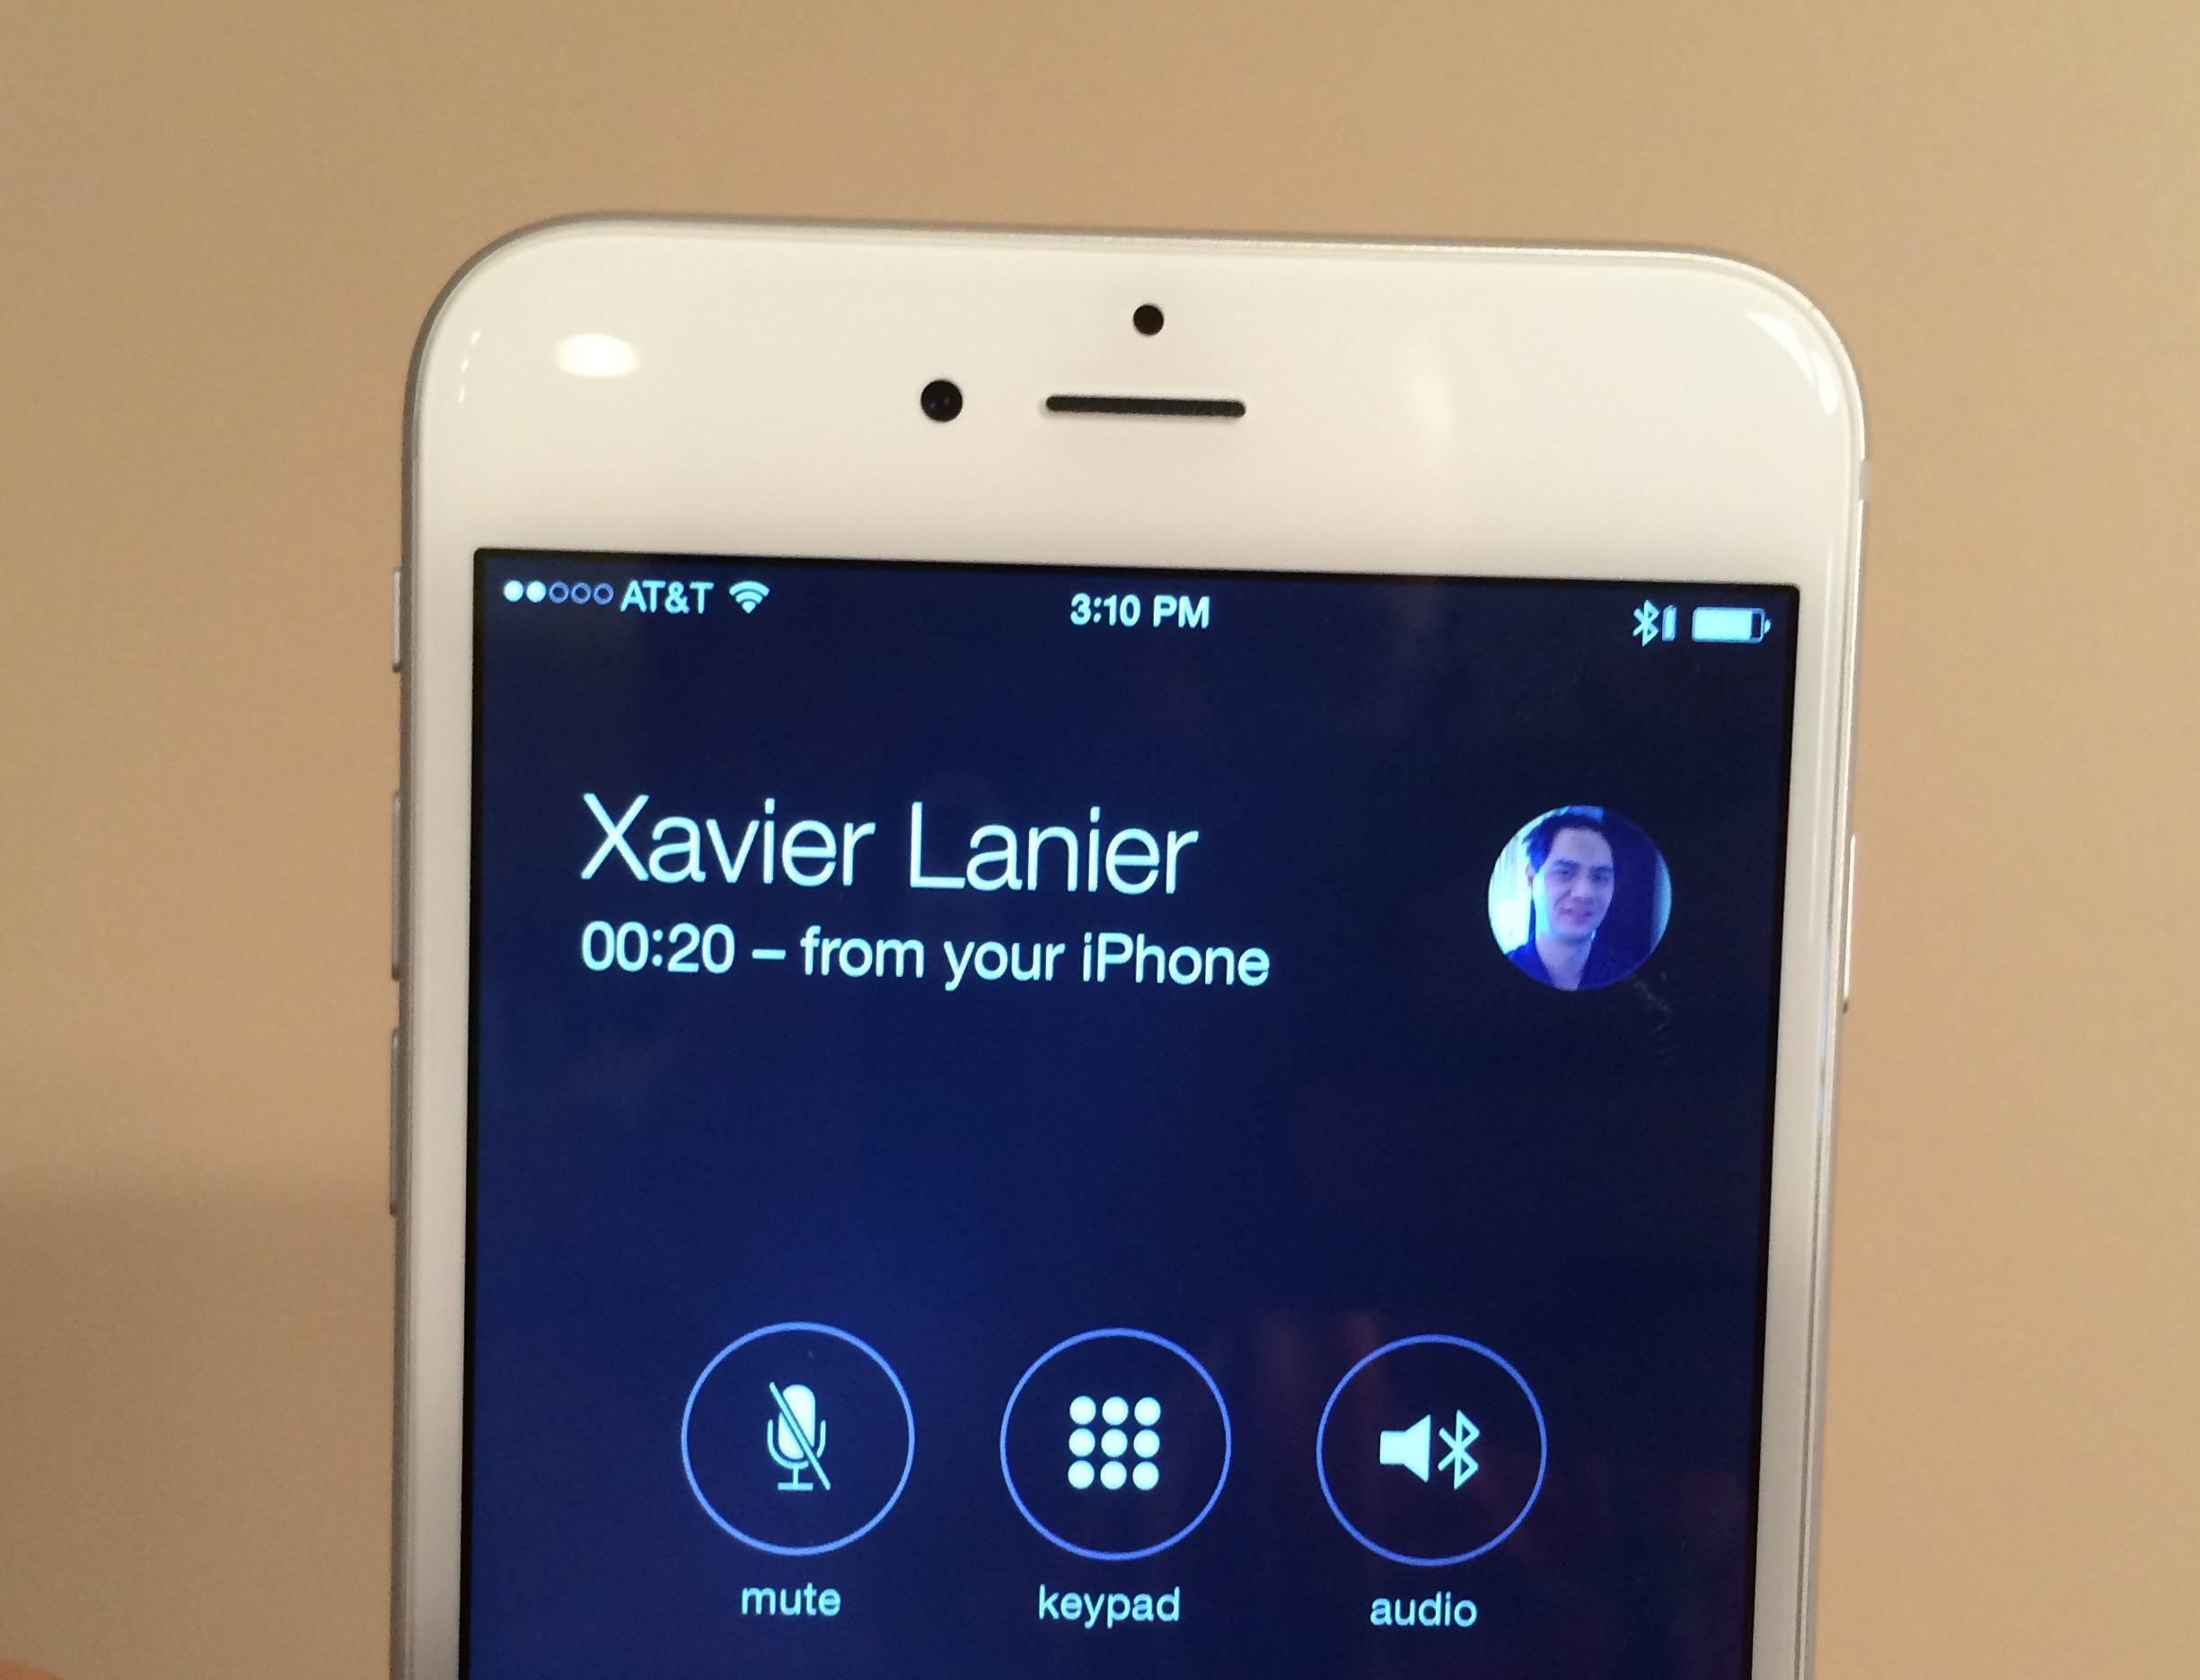 Here's how to stop all iPhones from ringing in your house after updating to iOS 8. This is when you share an Apple ID and see call from your iPhone listed below the contact.